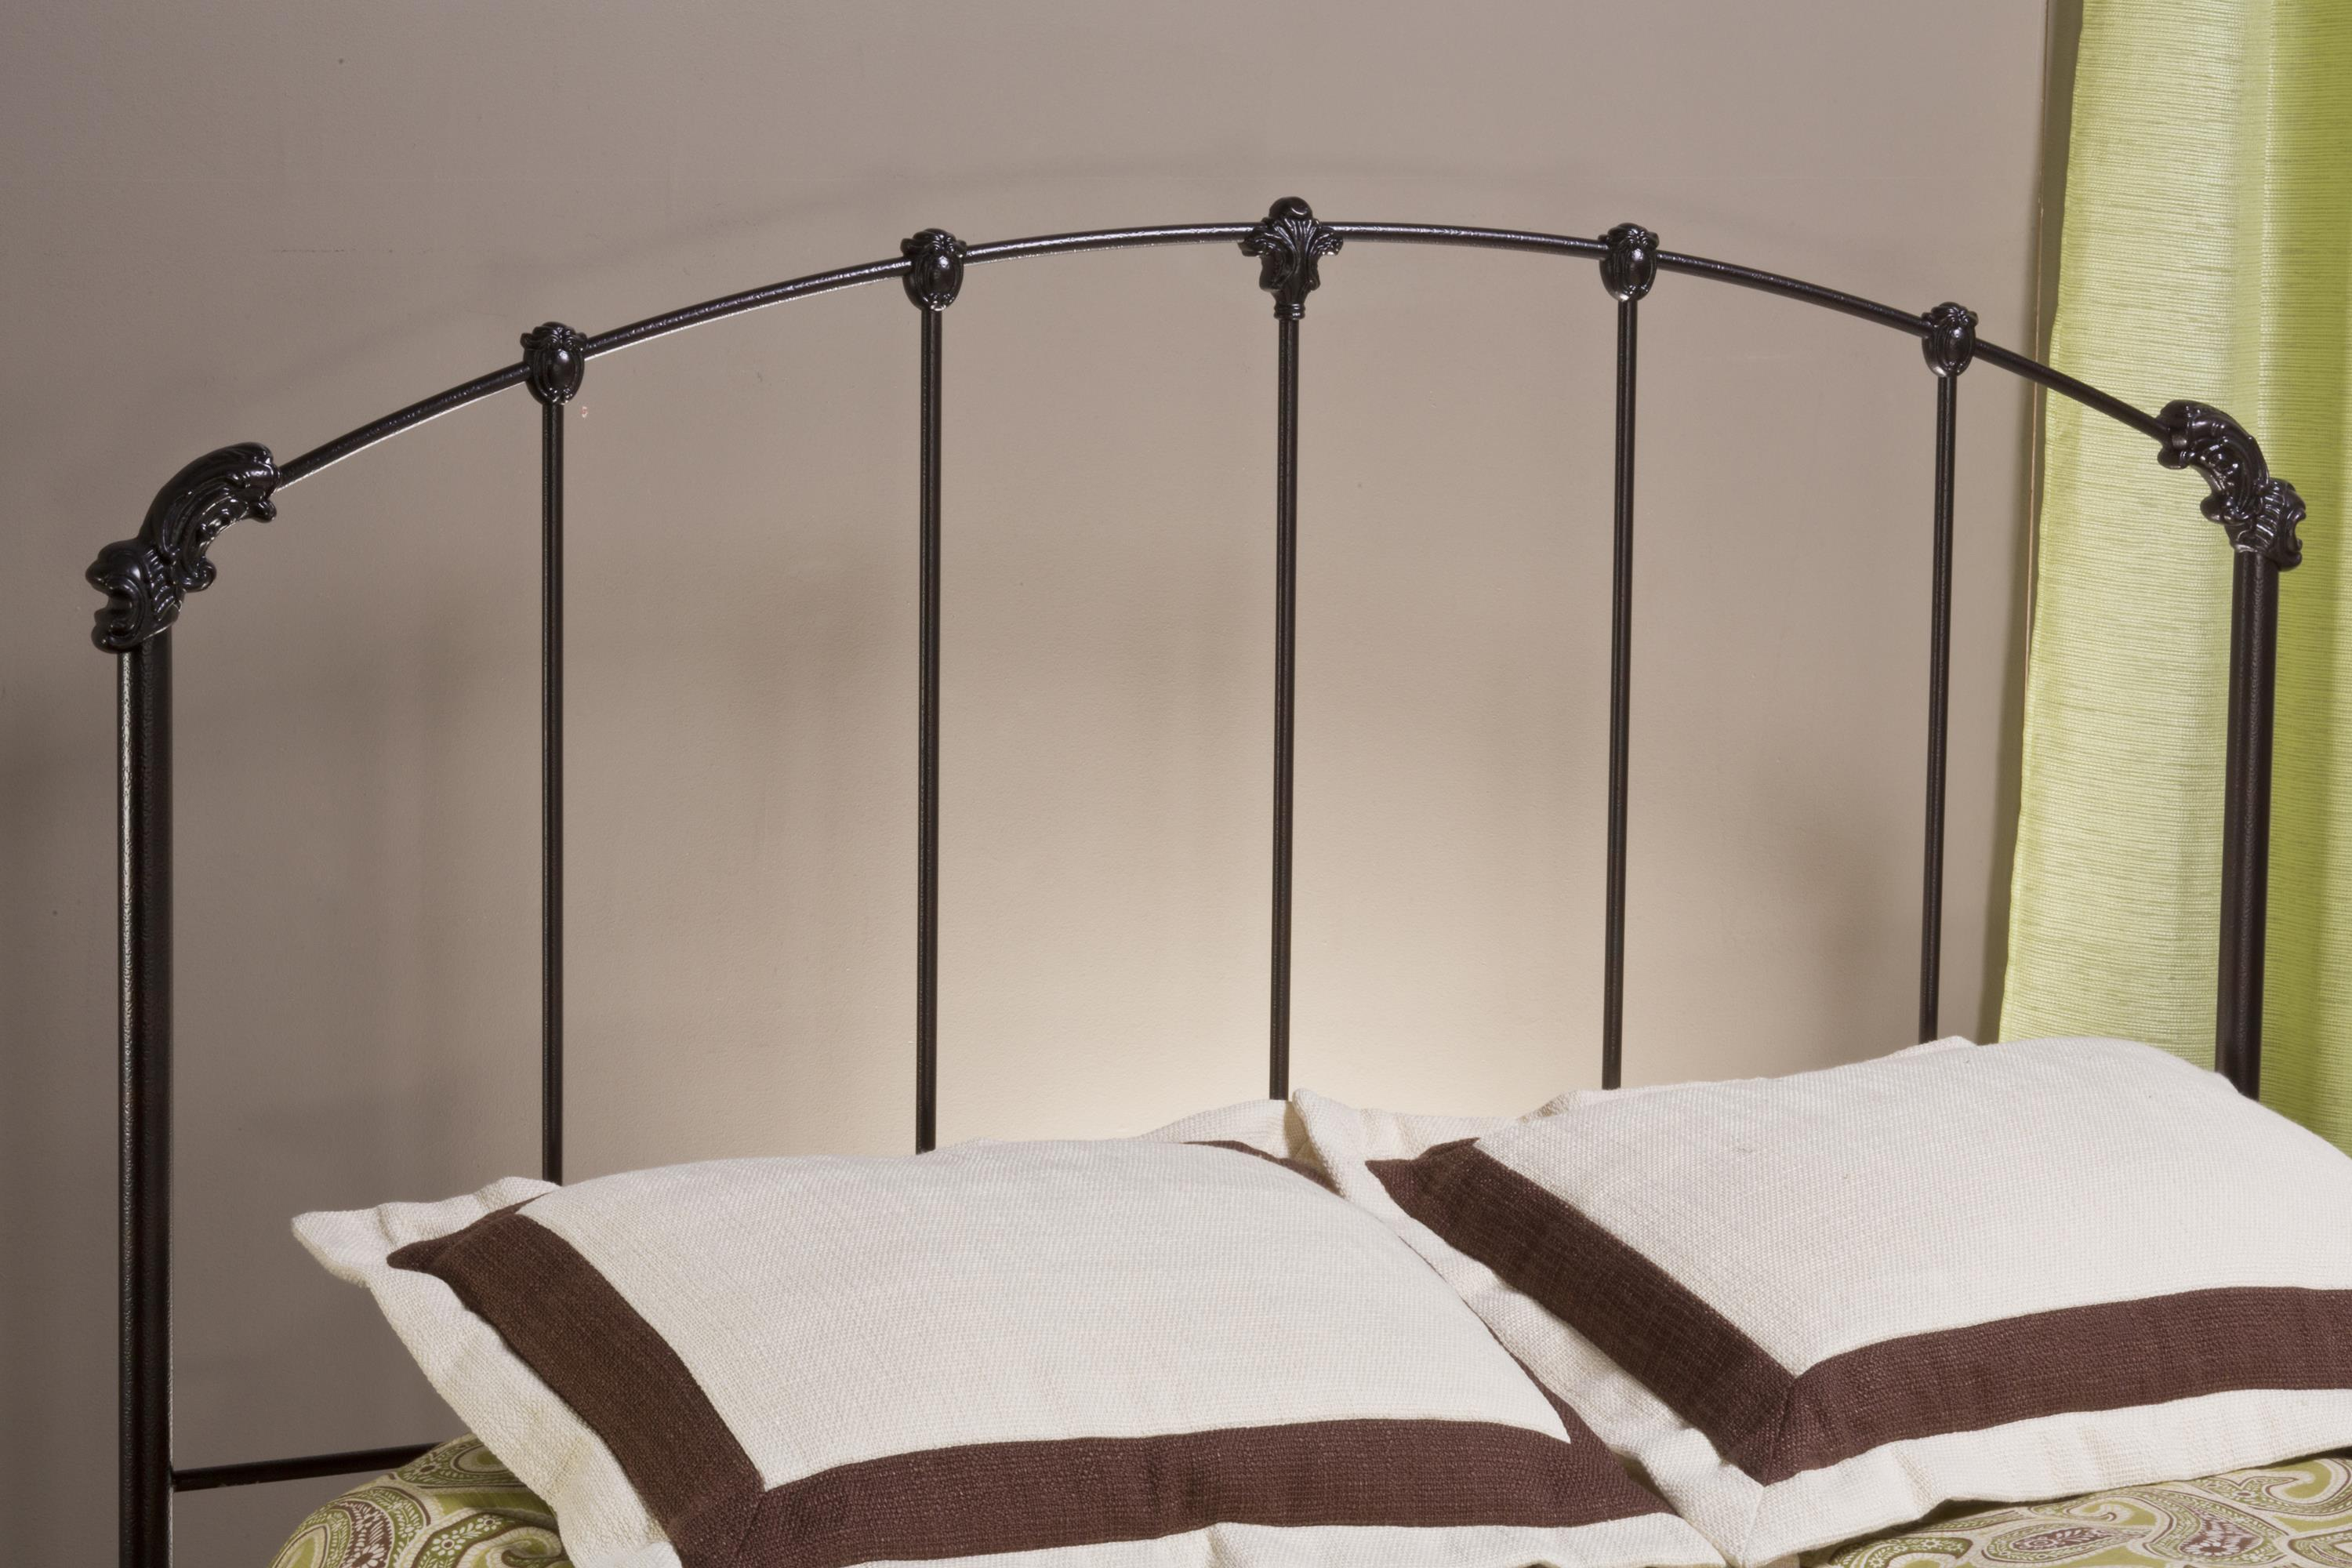 Hillsdale Metal Beds Bonita Full/Queen Headboard with Rails - Item Number: 346HFQR